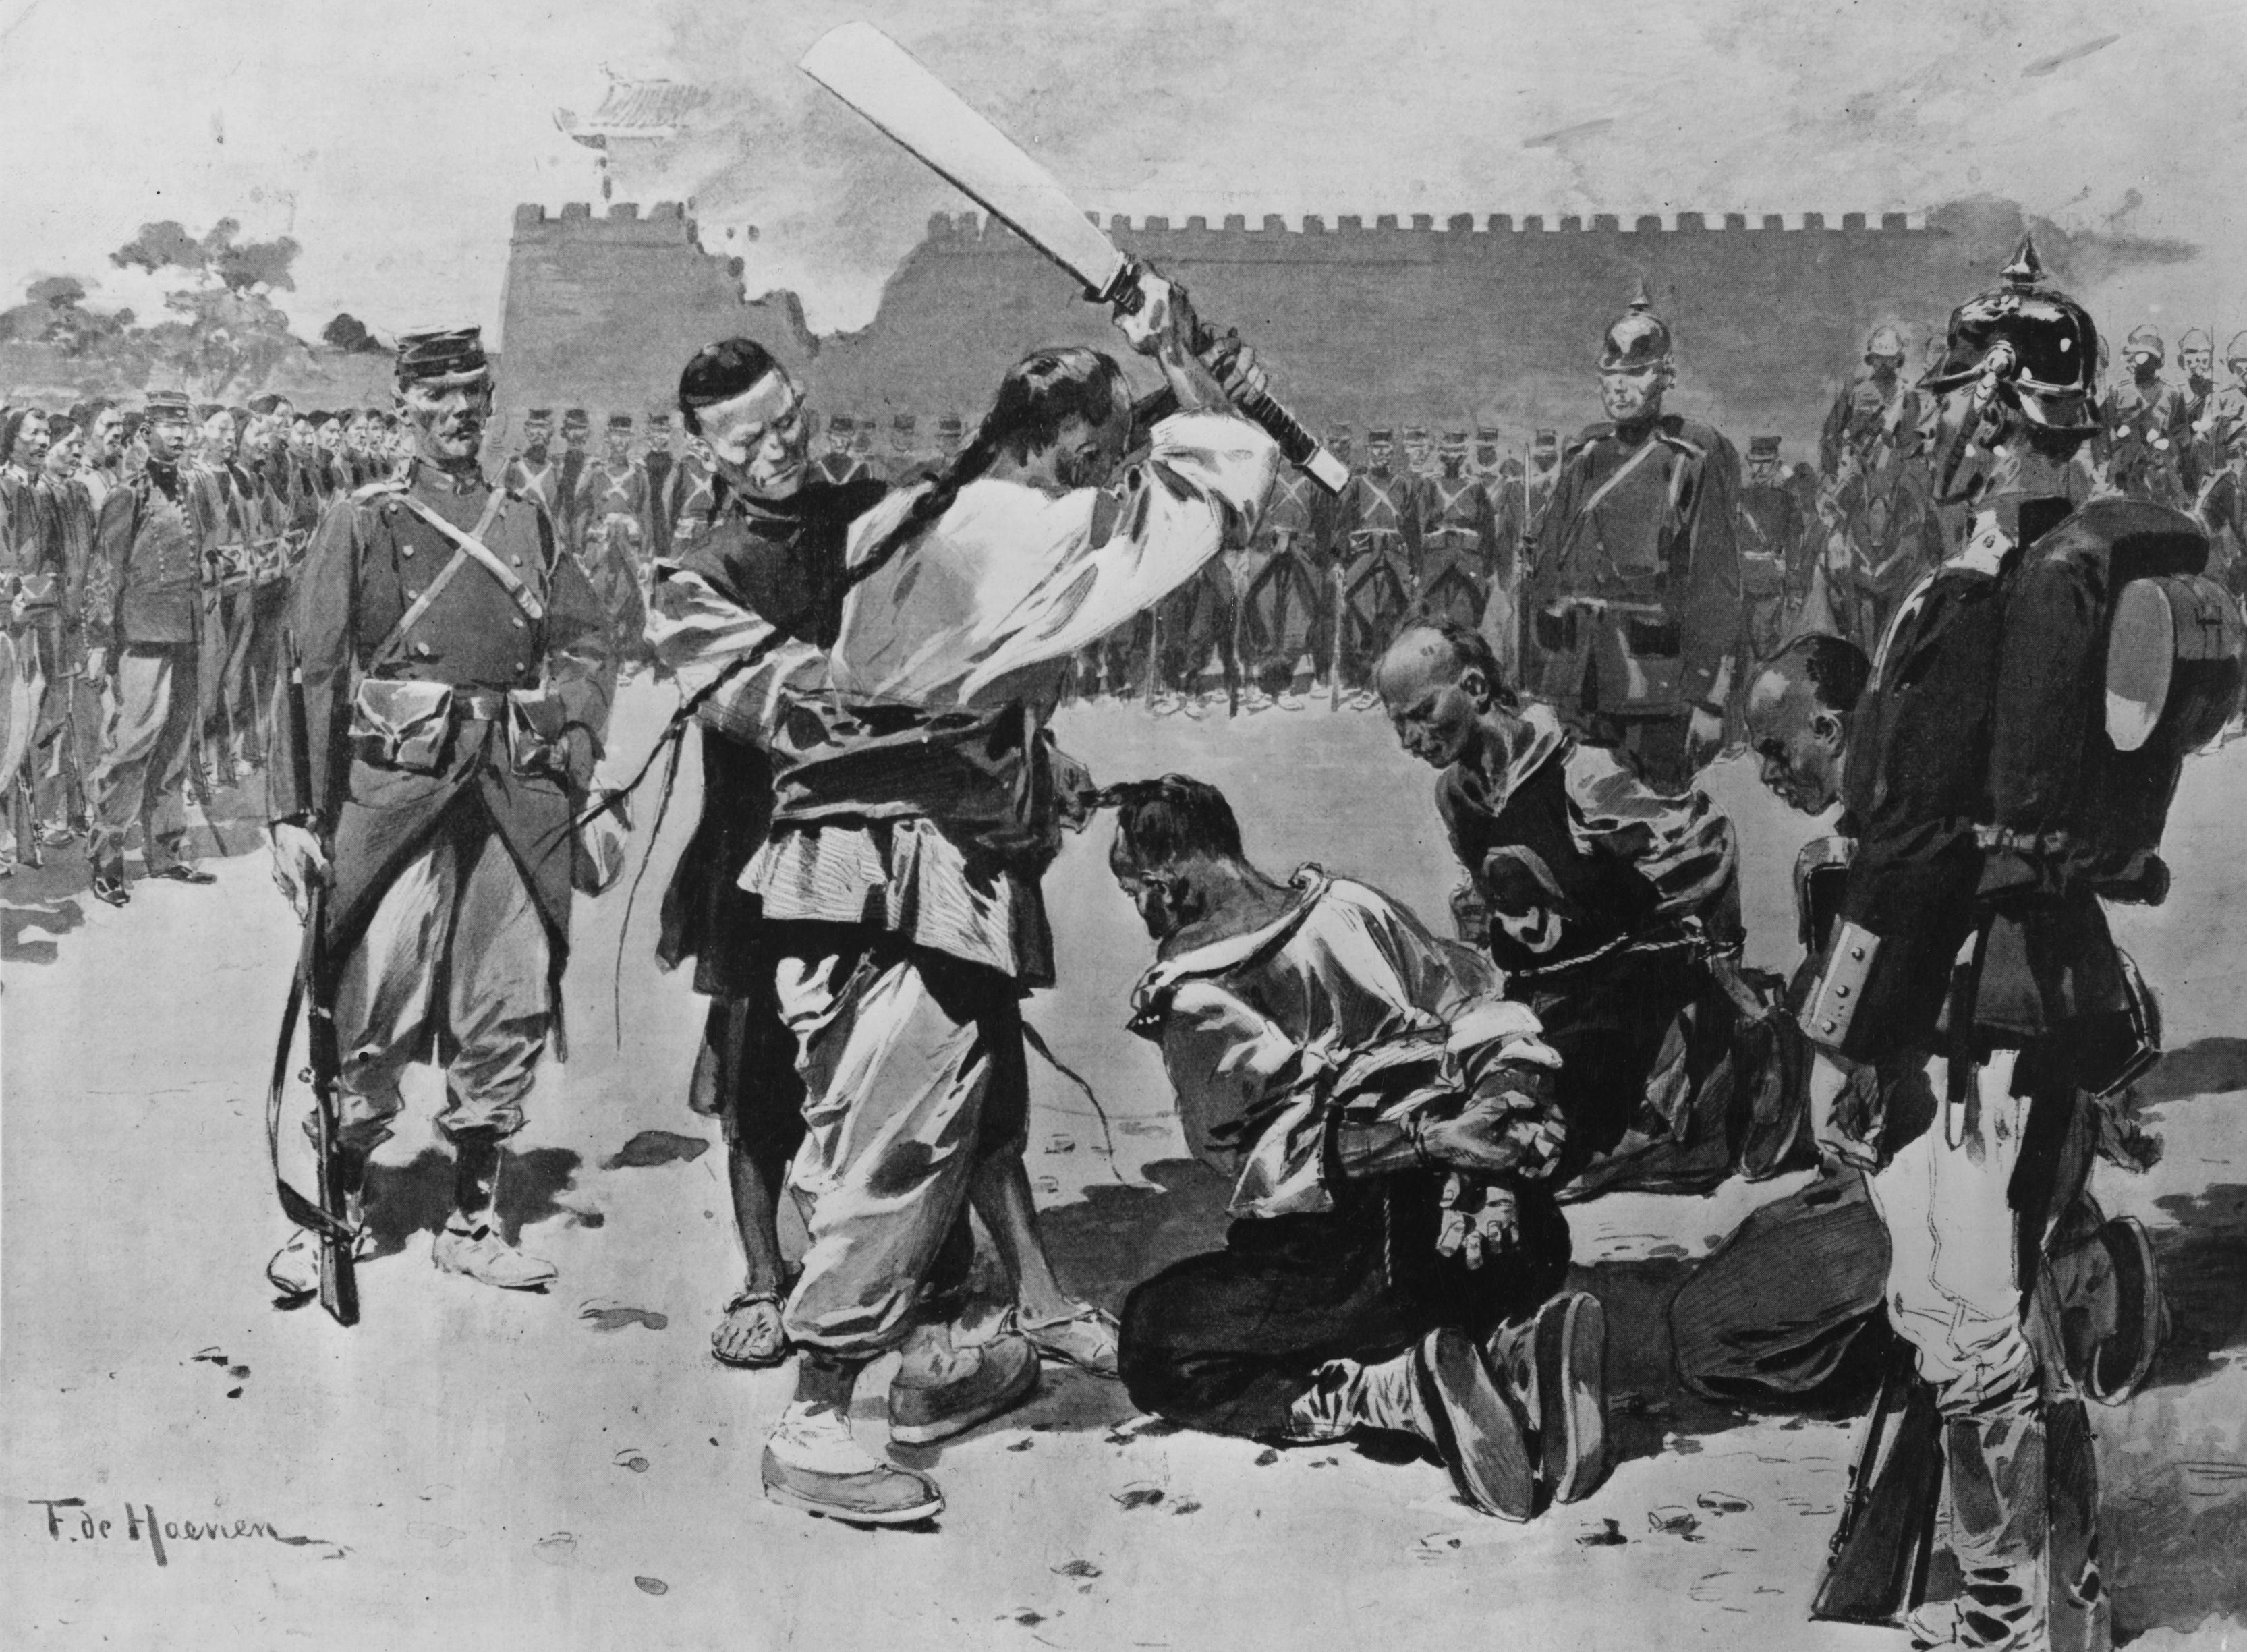 the boxer rebellion in china essay The boxer rebellion essay the boxer rebellion, also known as boxer a revolt was the key and the outcome of the boxer rebellion was disastrous for china.